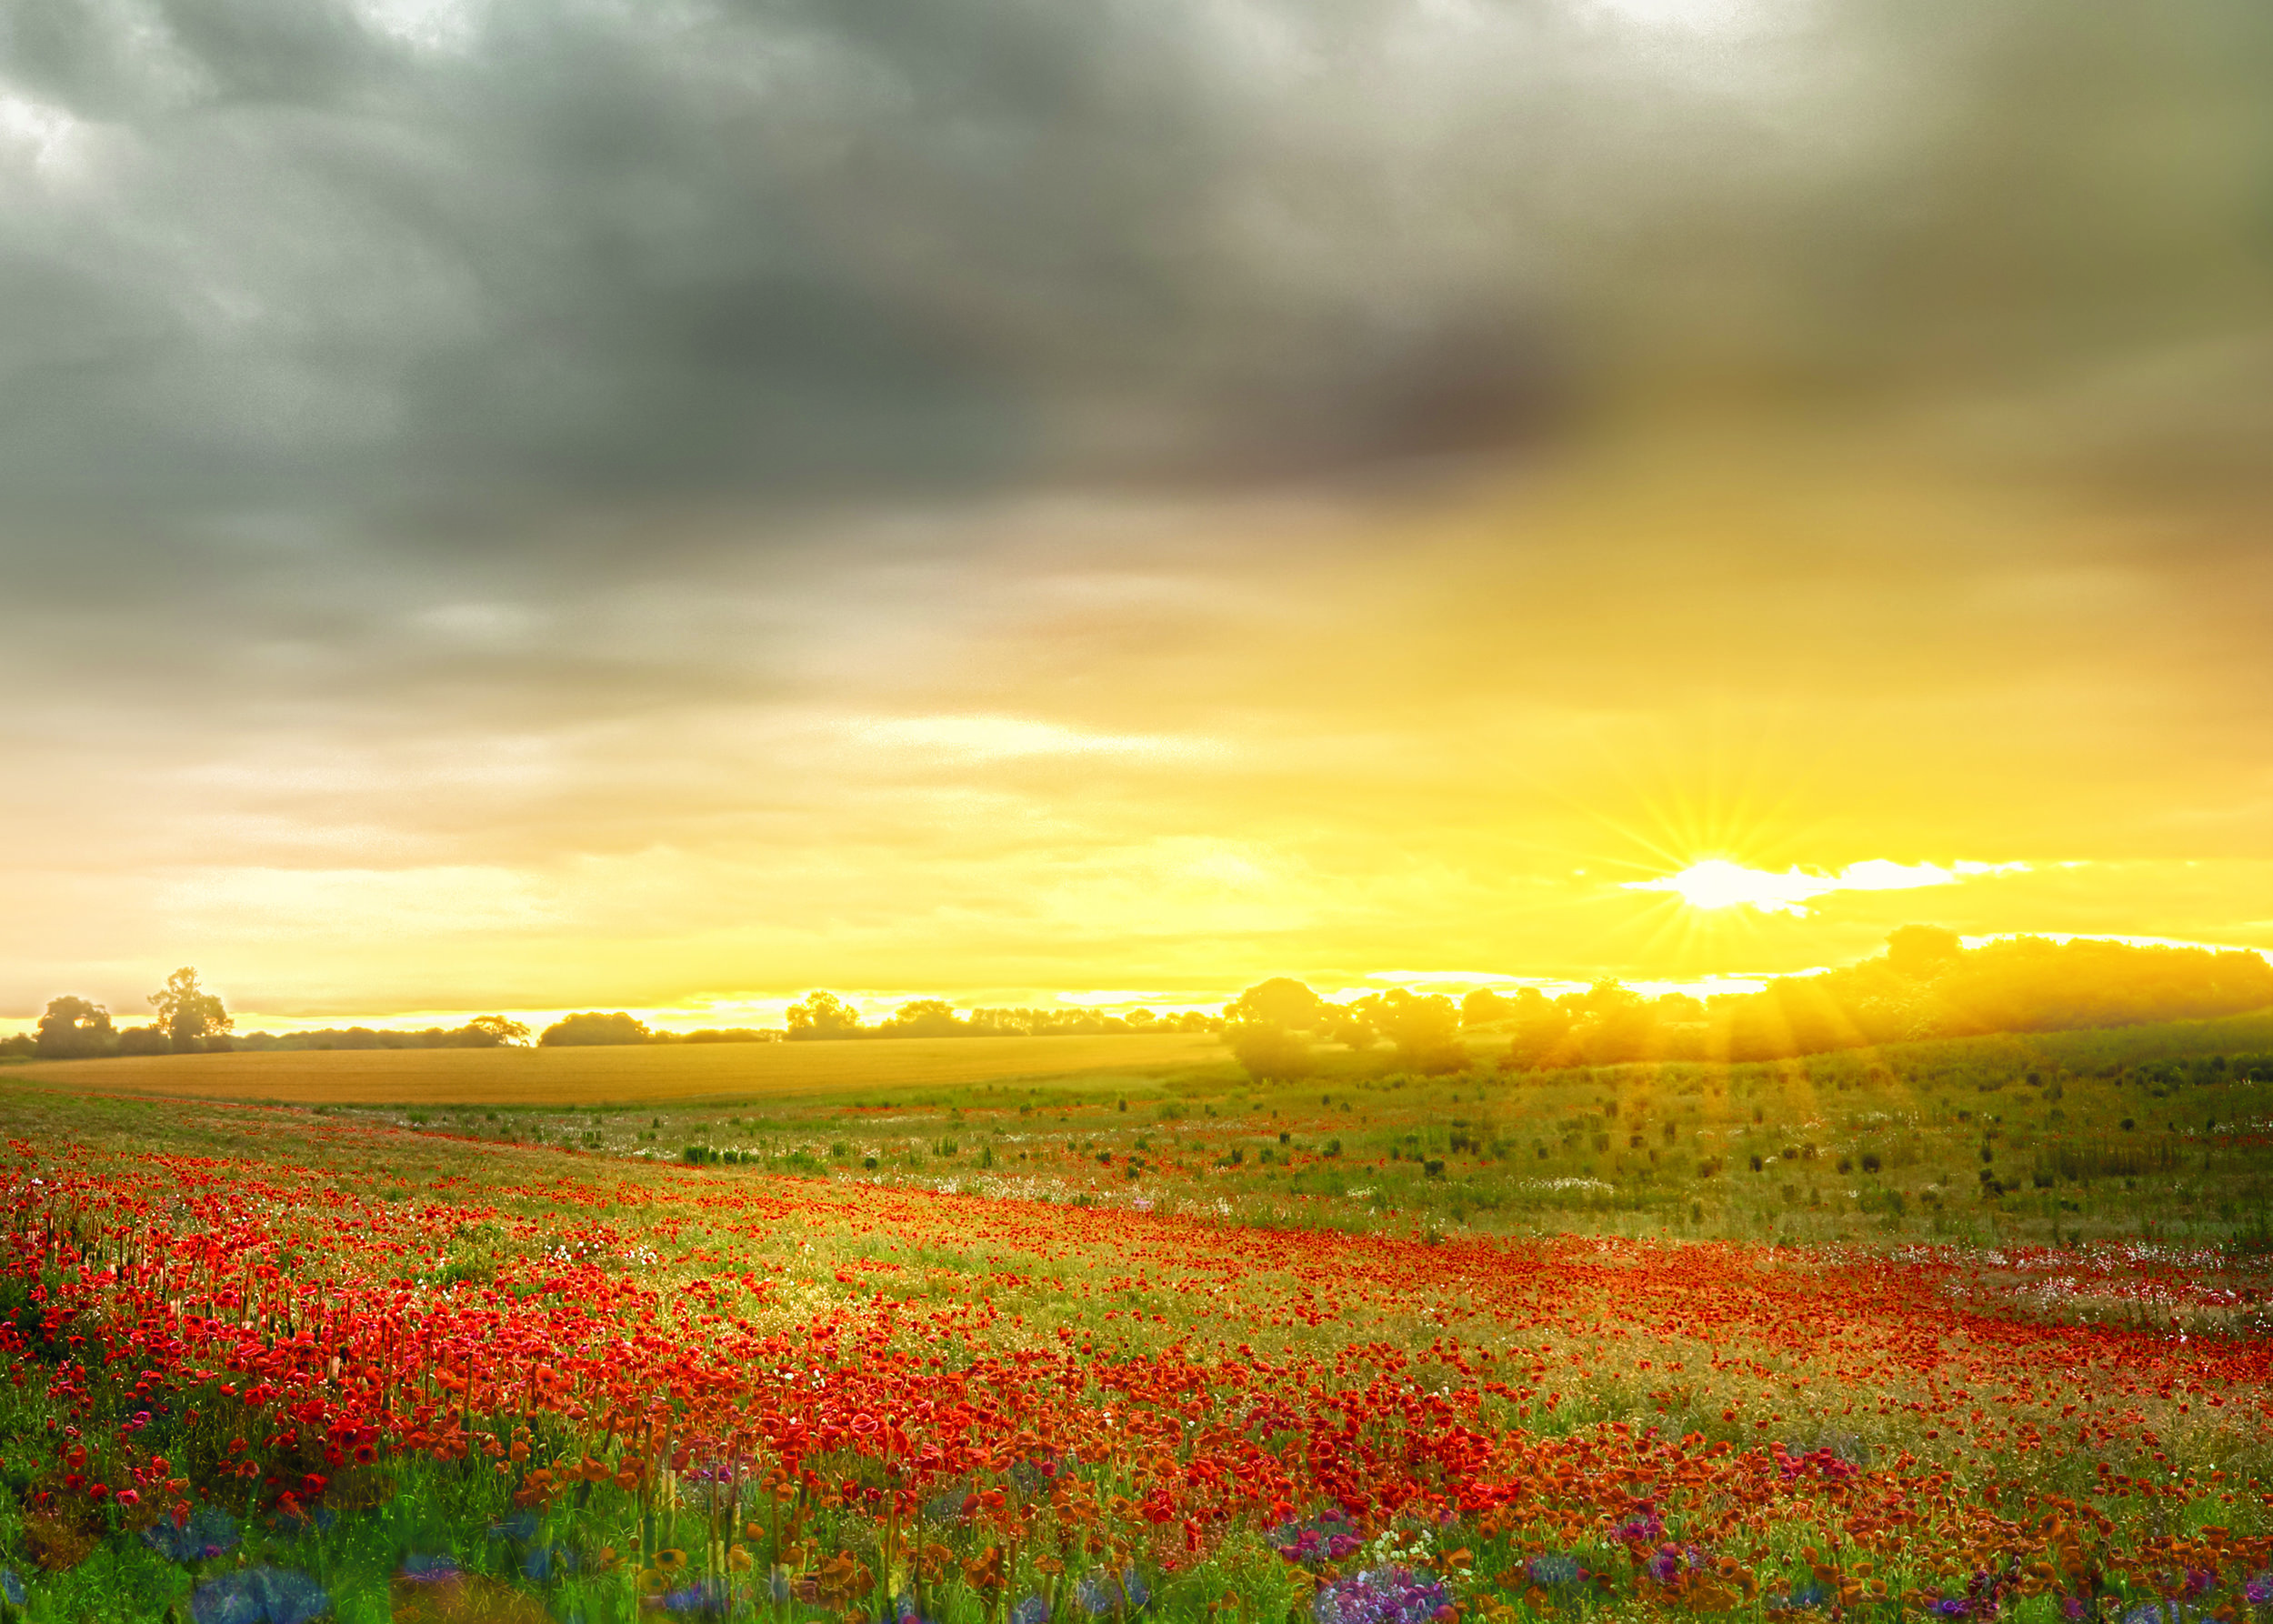 Sky-and-poppies-only.jpg